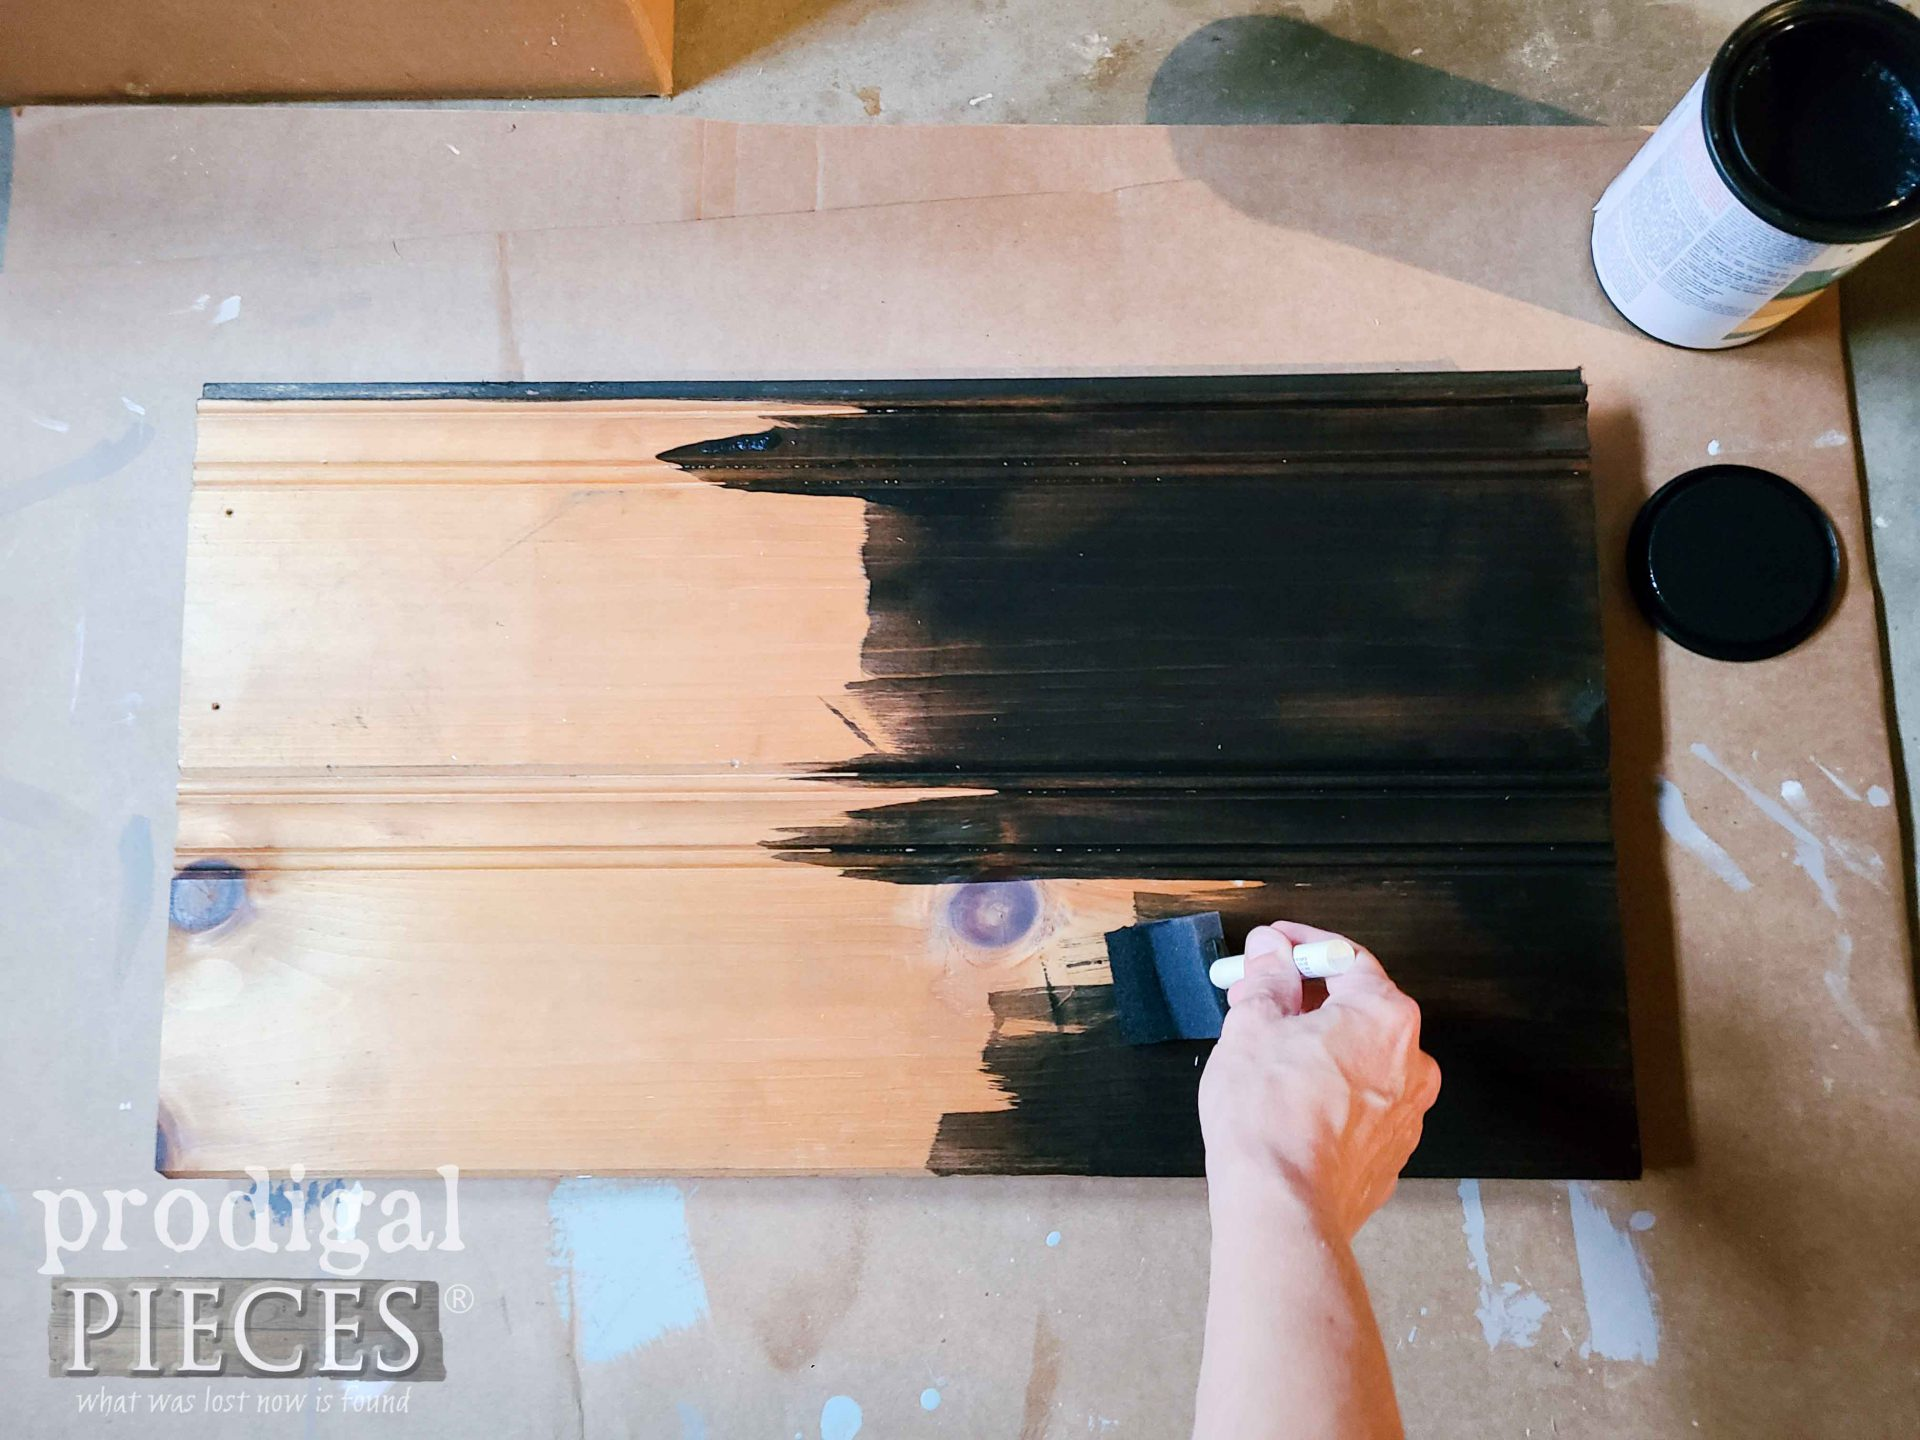 Staining Pine Siding with Charcoal Natural Reactive Stain by Prodigal Pieces | prodigalpieces.com